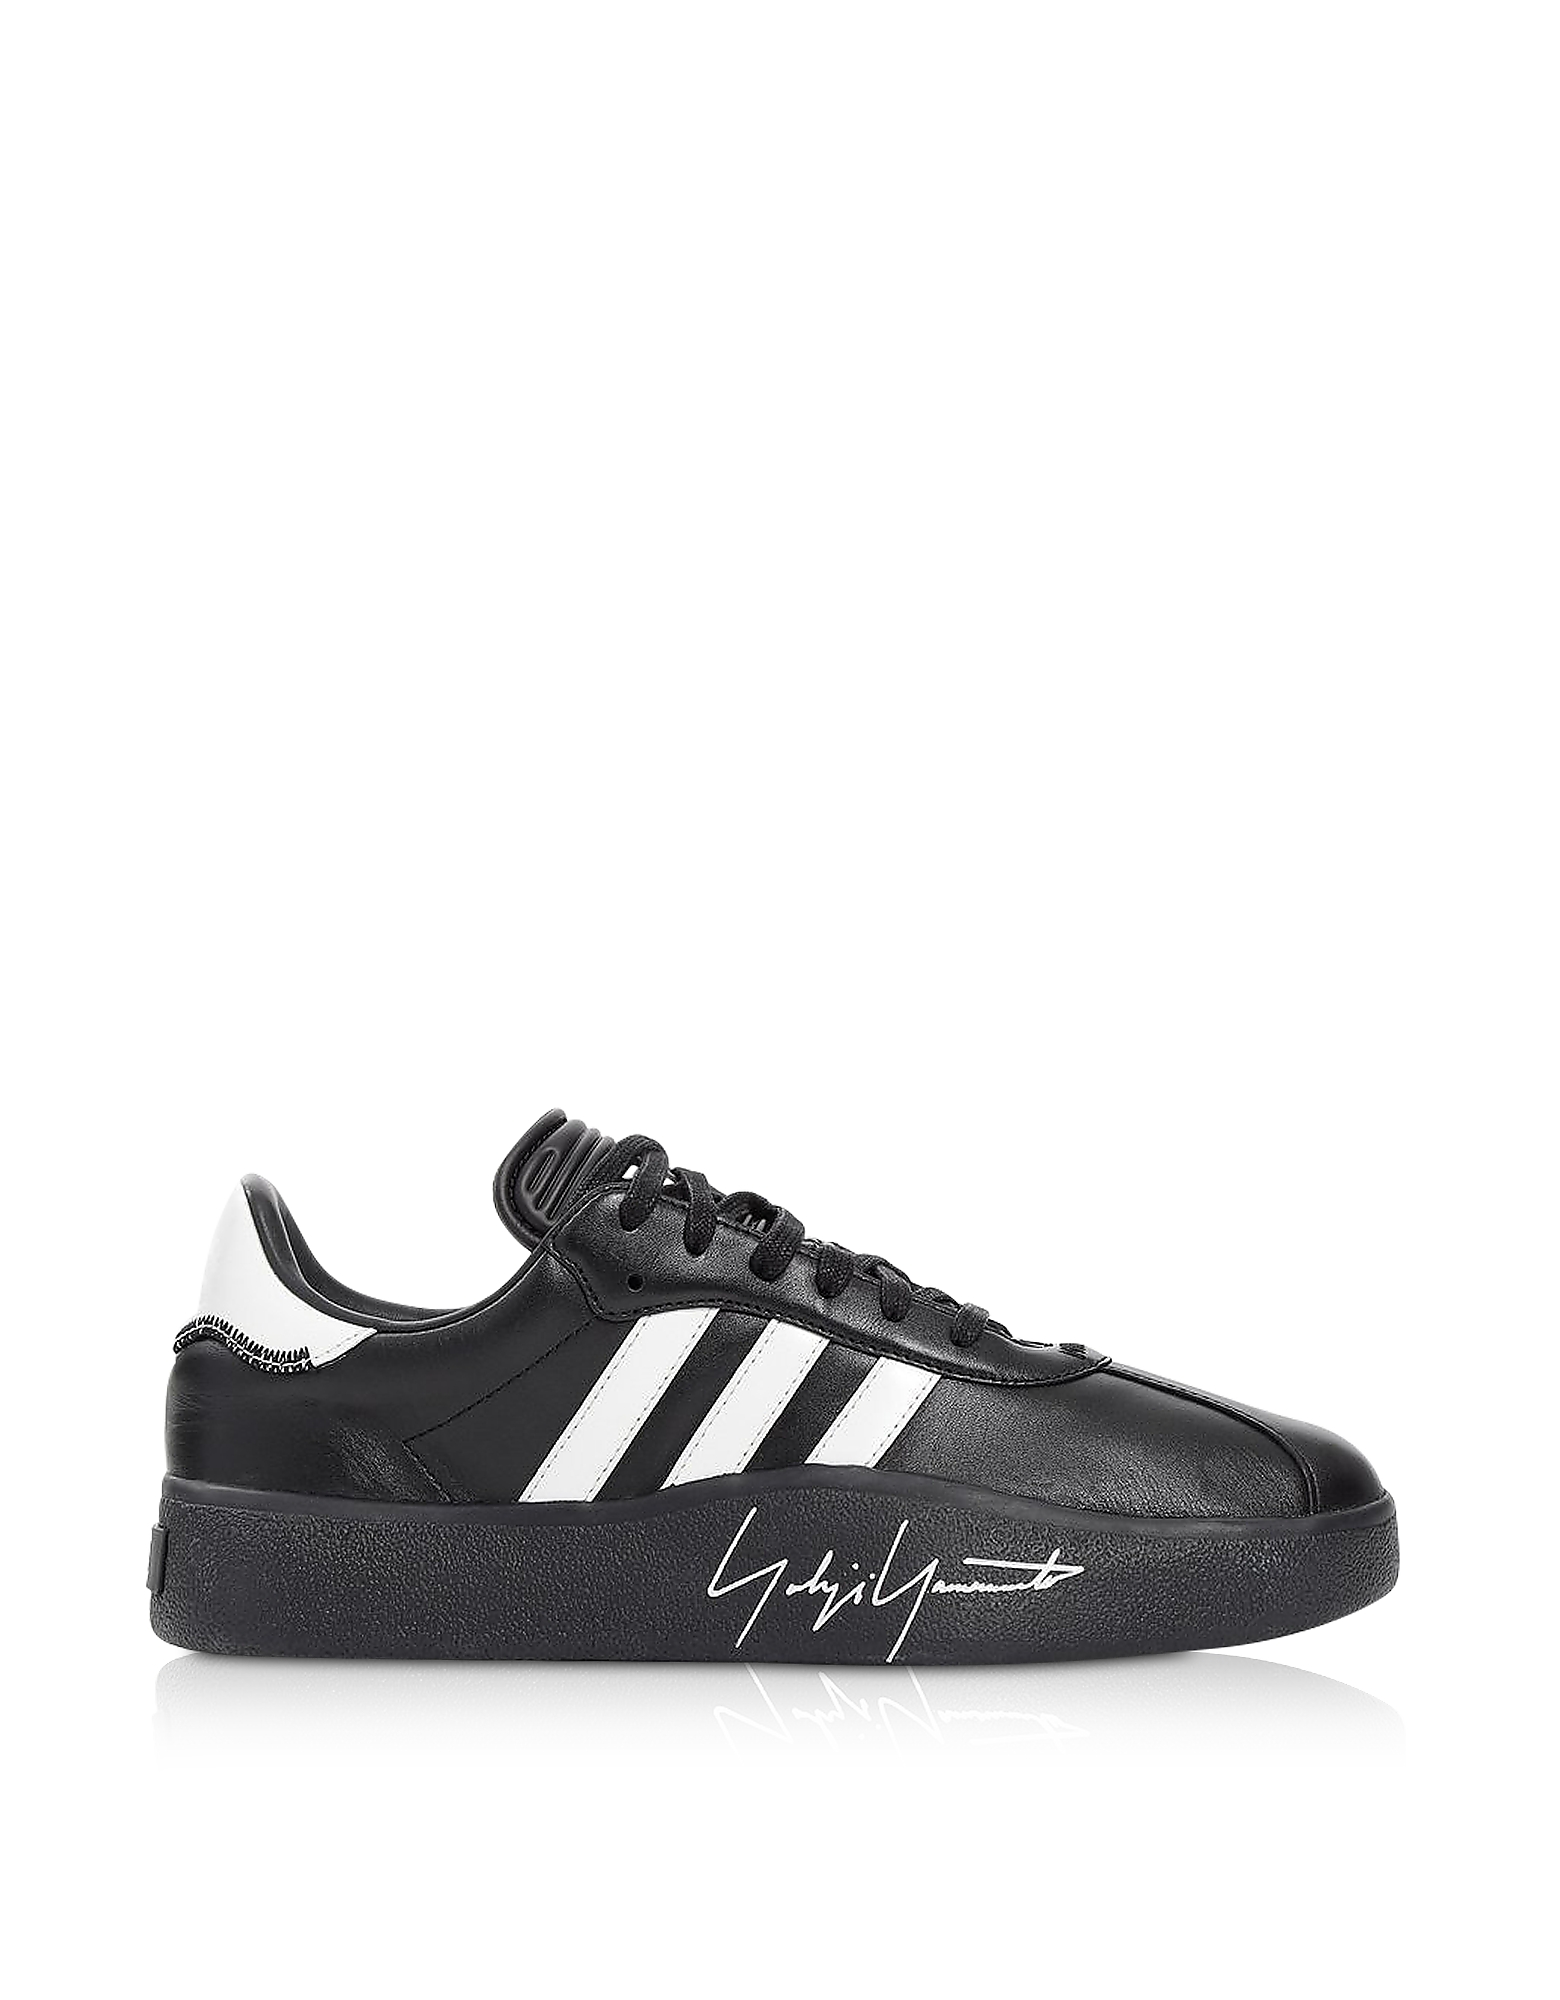 Y-3 Tangutsu Football Sneakers, Black